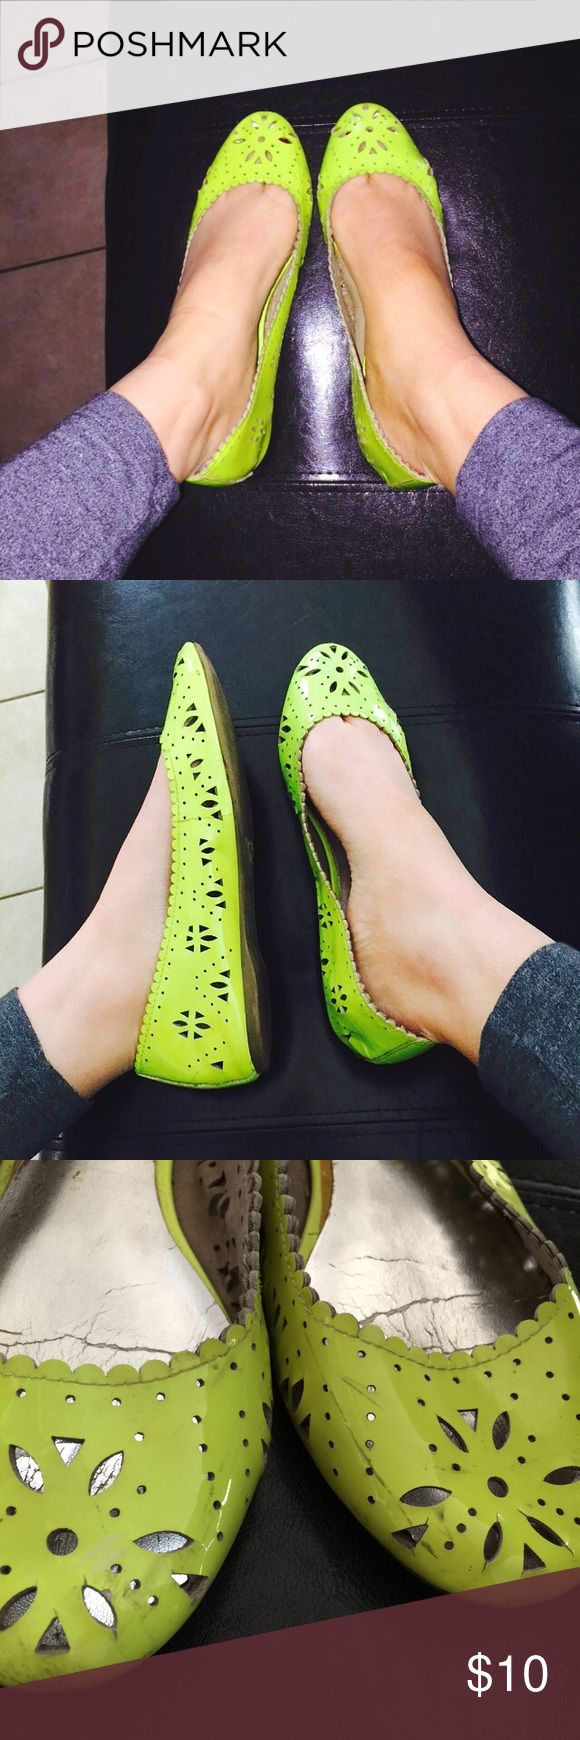 Gap neon flats Scuffing (see pics) super bright and fun for the summer! GAP Shoes Flats & Loafers